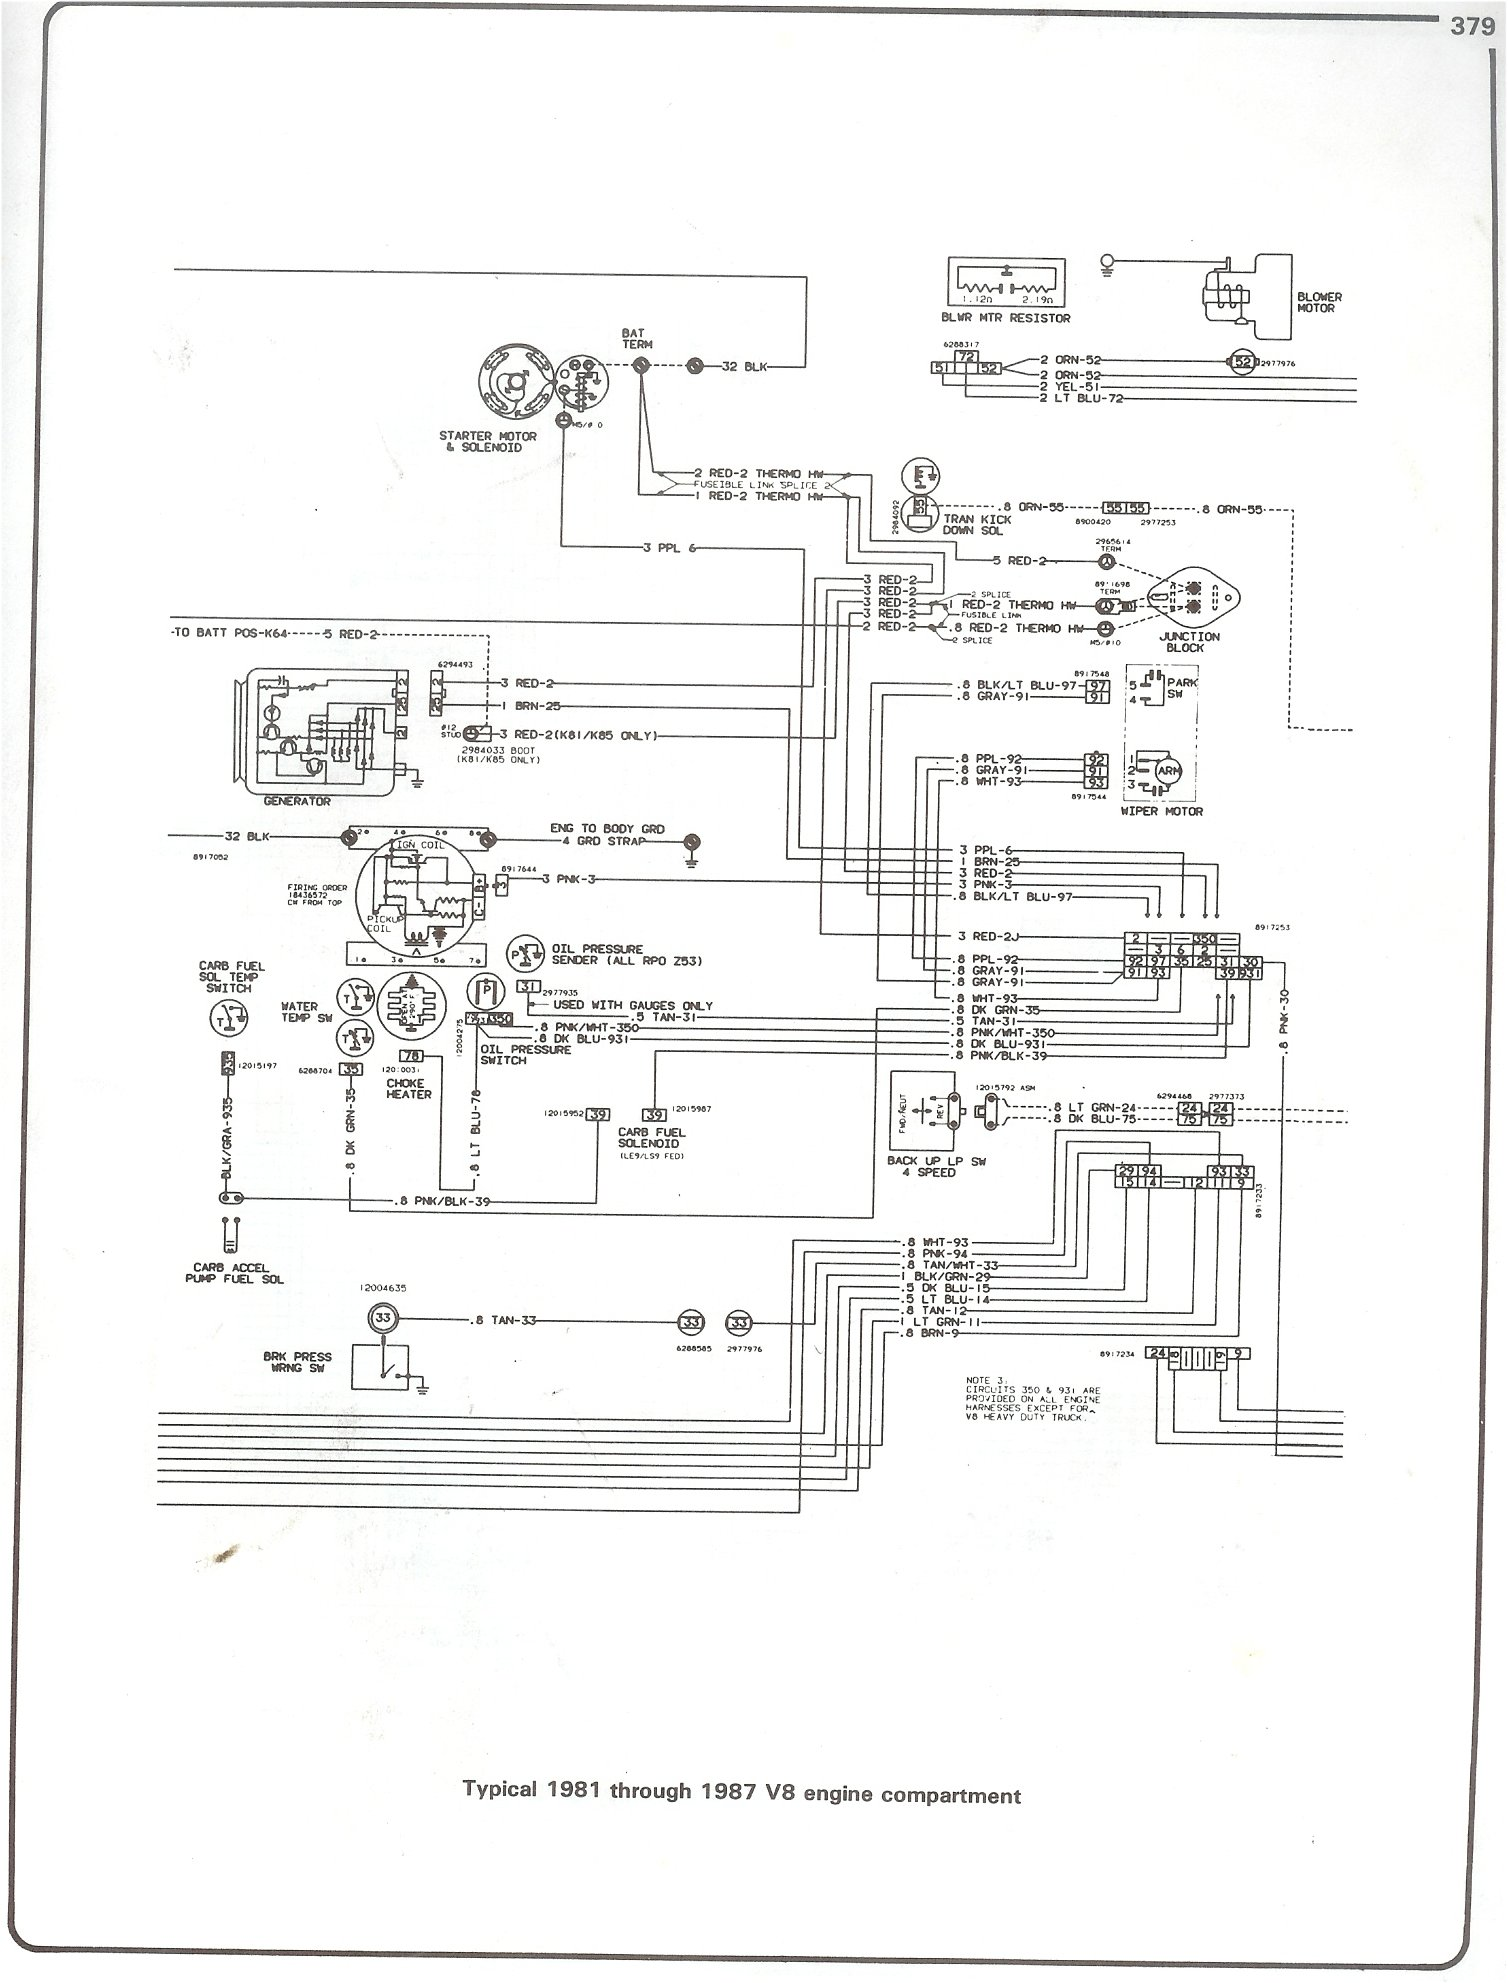 1987 Chevy C10 Fuse Diagram Reinvent Your Wiring Box